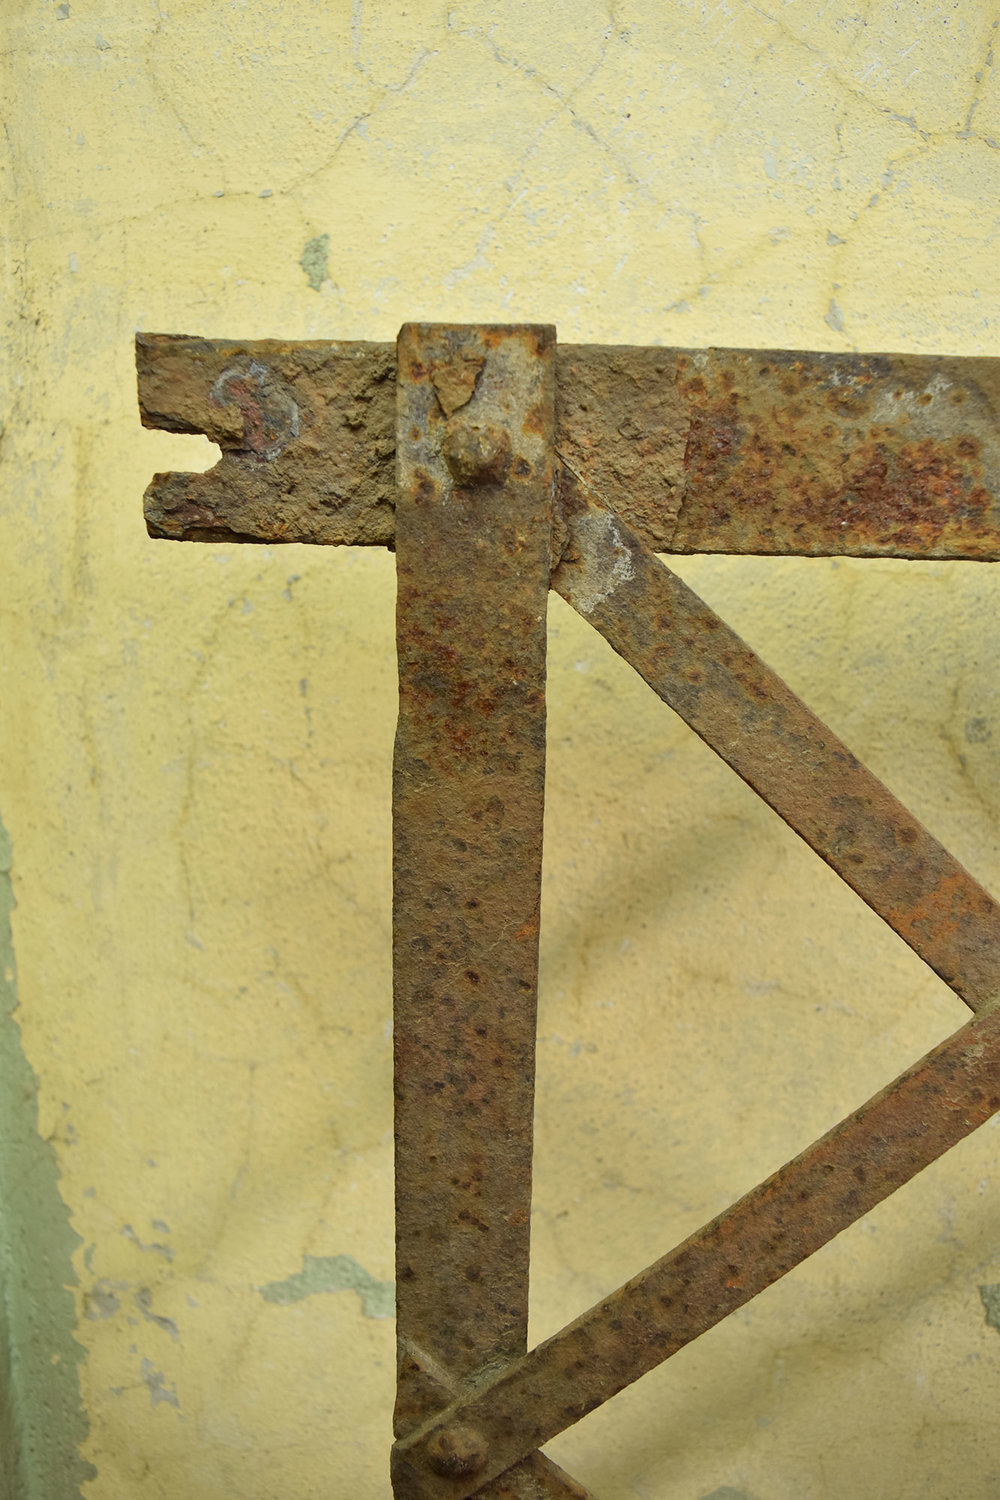 46872-iron-ext-gate-end-section.jpg